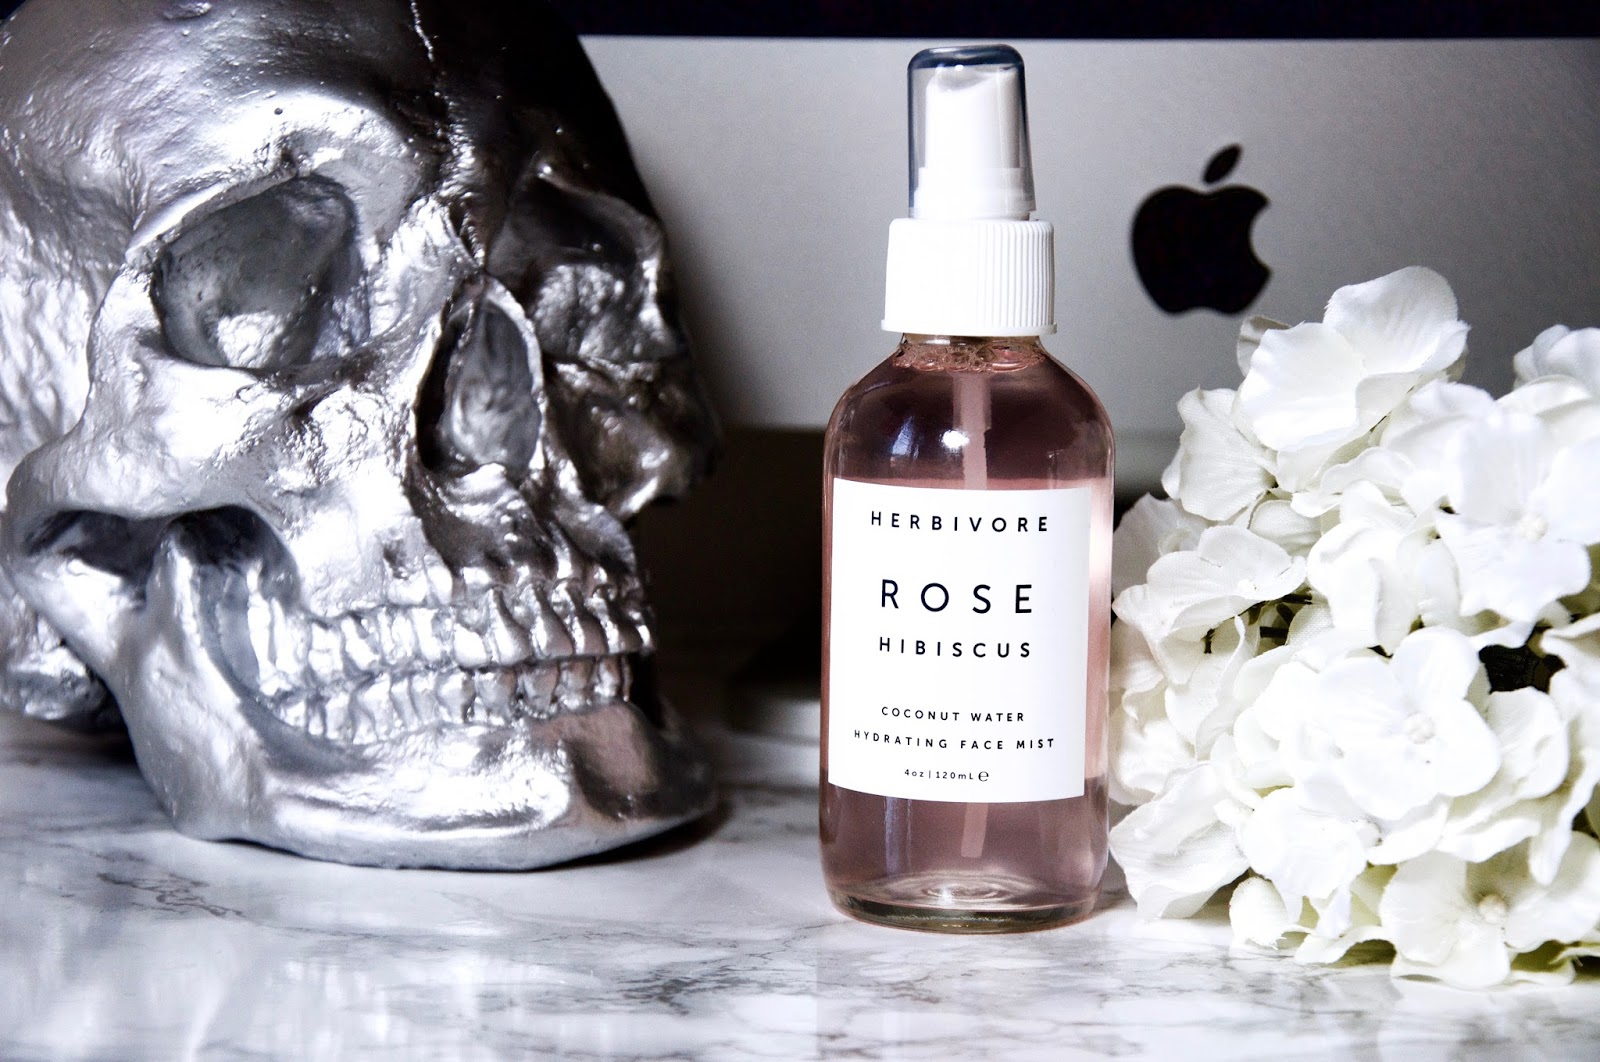 THE REVIEW: HERBIVORE BOTANICALS ROSE HIBISCUS HYDRATING FACE MIST